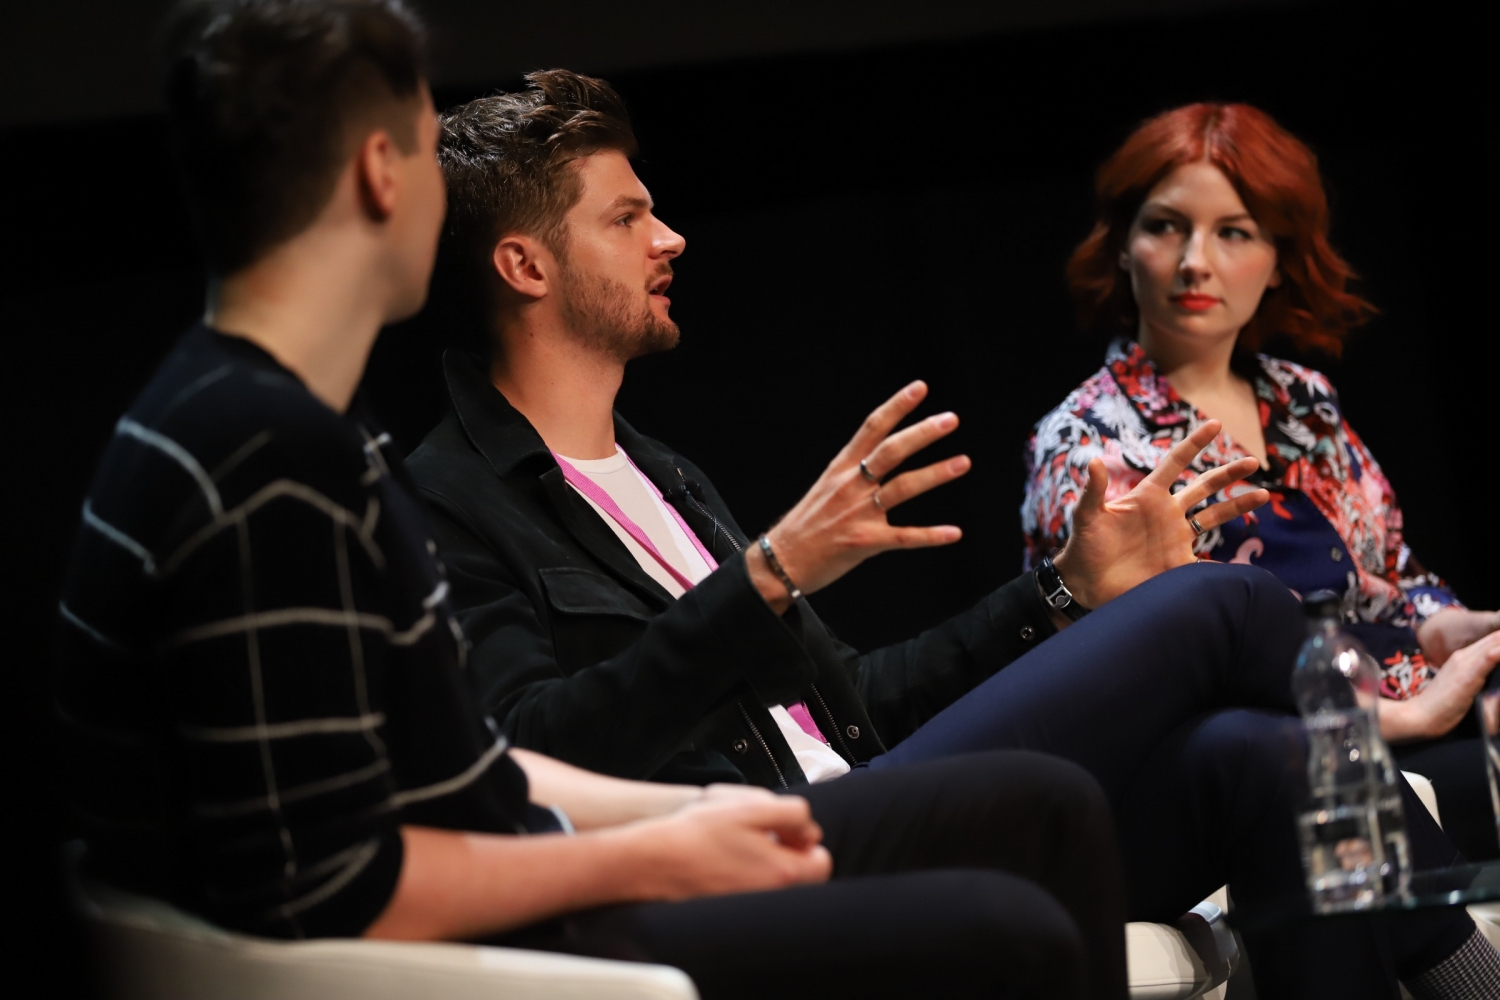 Millennials and Mobility - Vlogger and influencer Jim Chapman